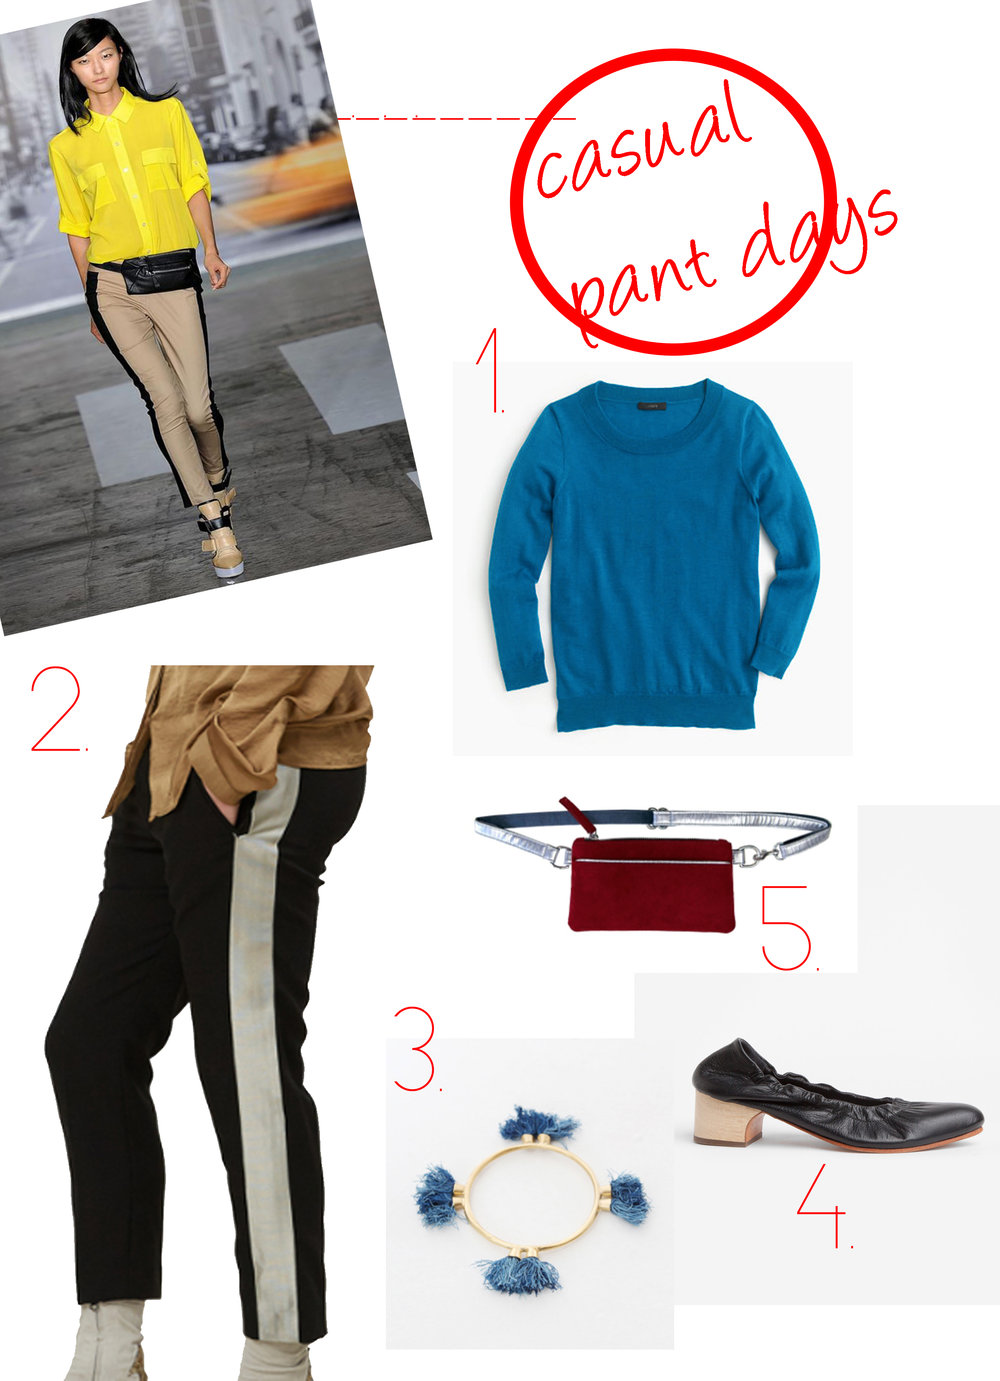 1.  J.Crew Tippi Pullover Sweater  2.  Haider Ackermann Black Grosgrain Ribbon Trousers  3.  Takara Kali Tassel Bracelet   4.  Rachel Comey Black Calder Black Floater  5.  Hipsters for Sisters Mulberry Red Pocket Bum Bag